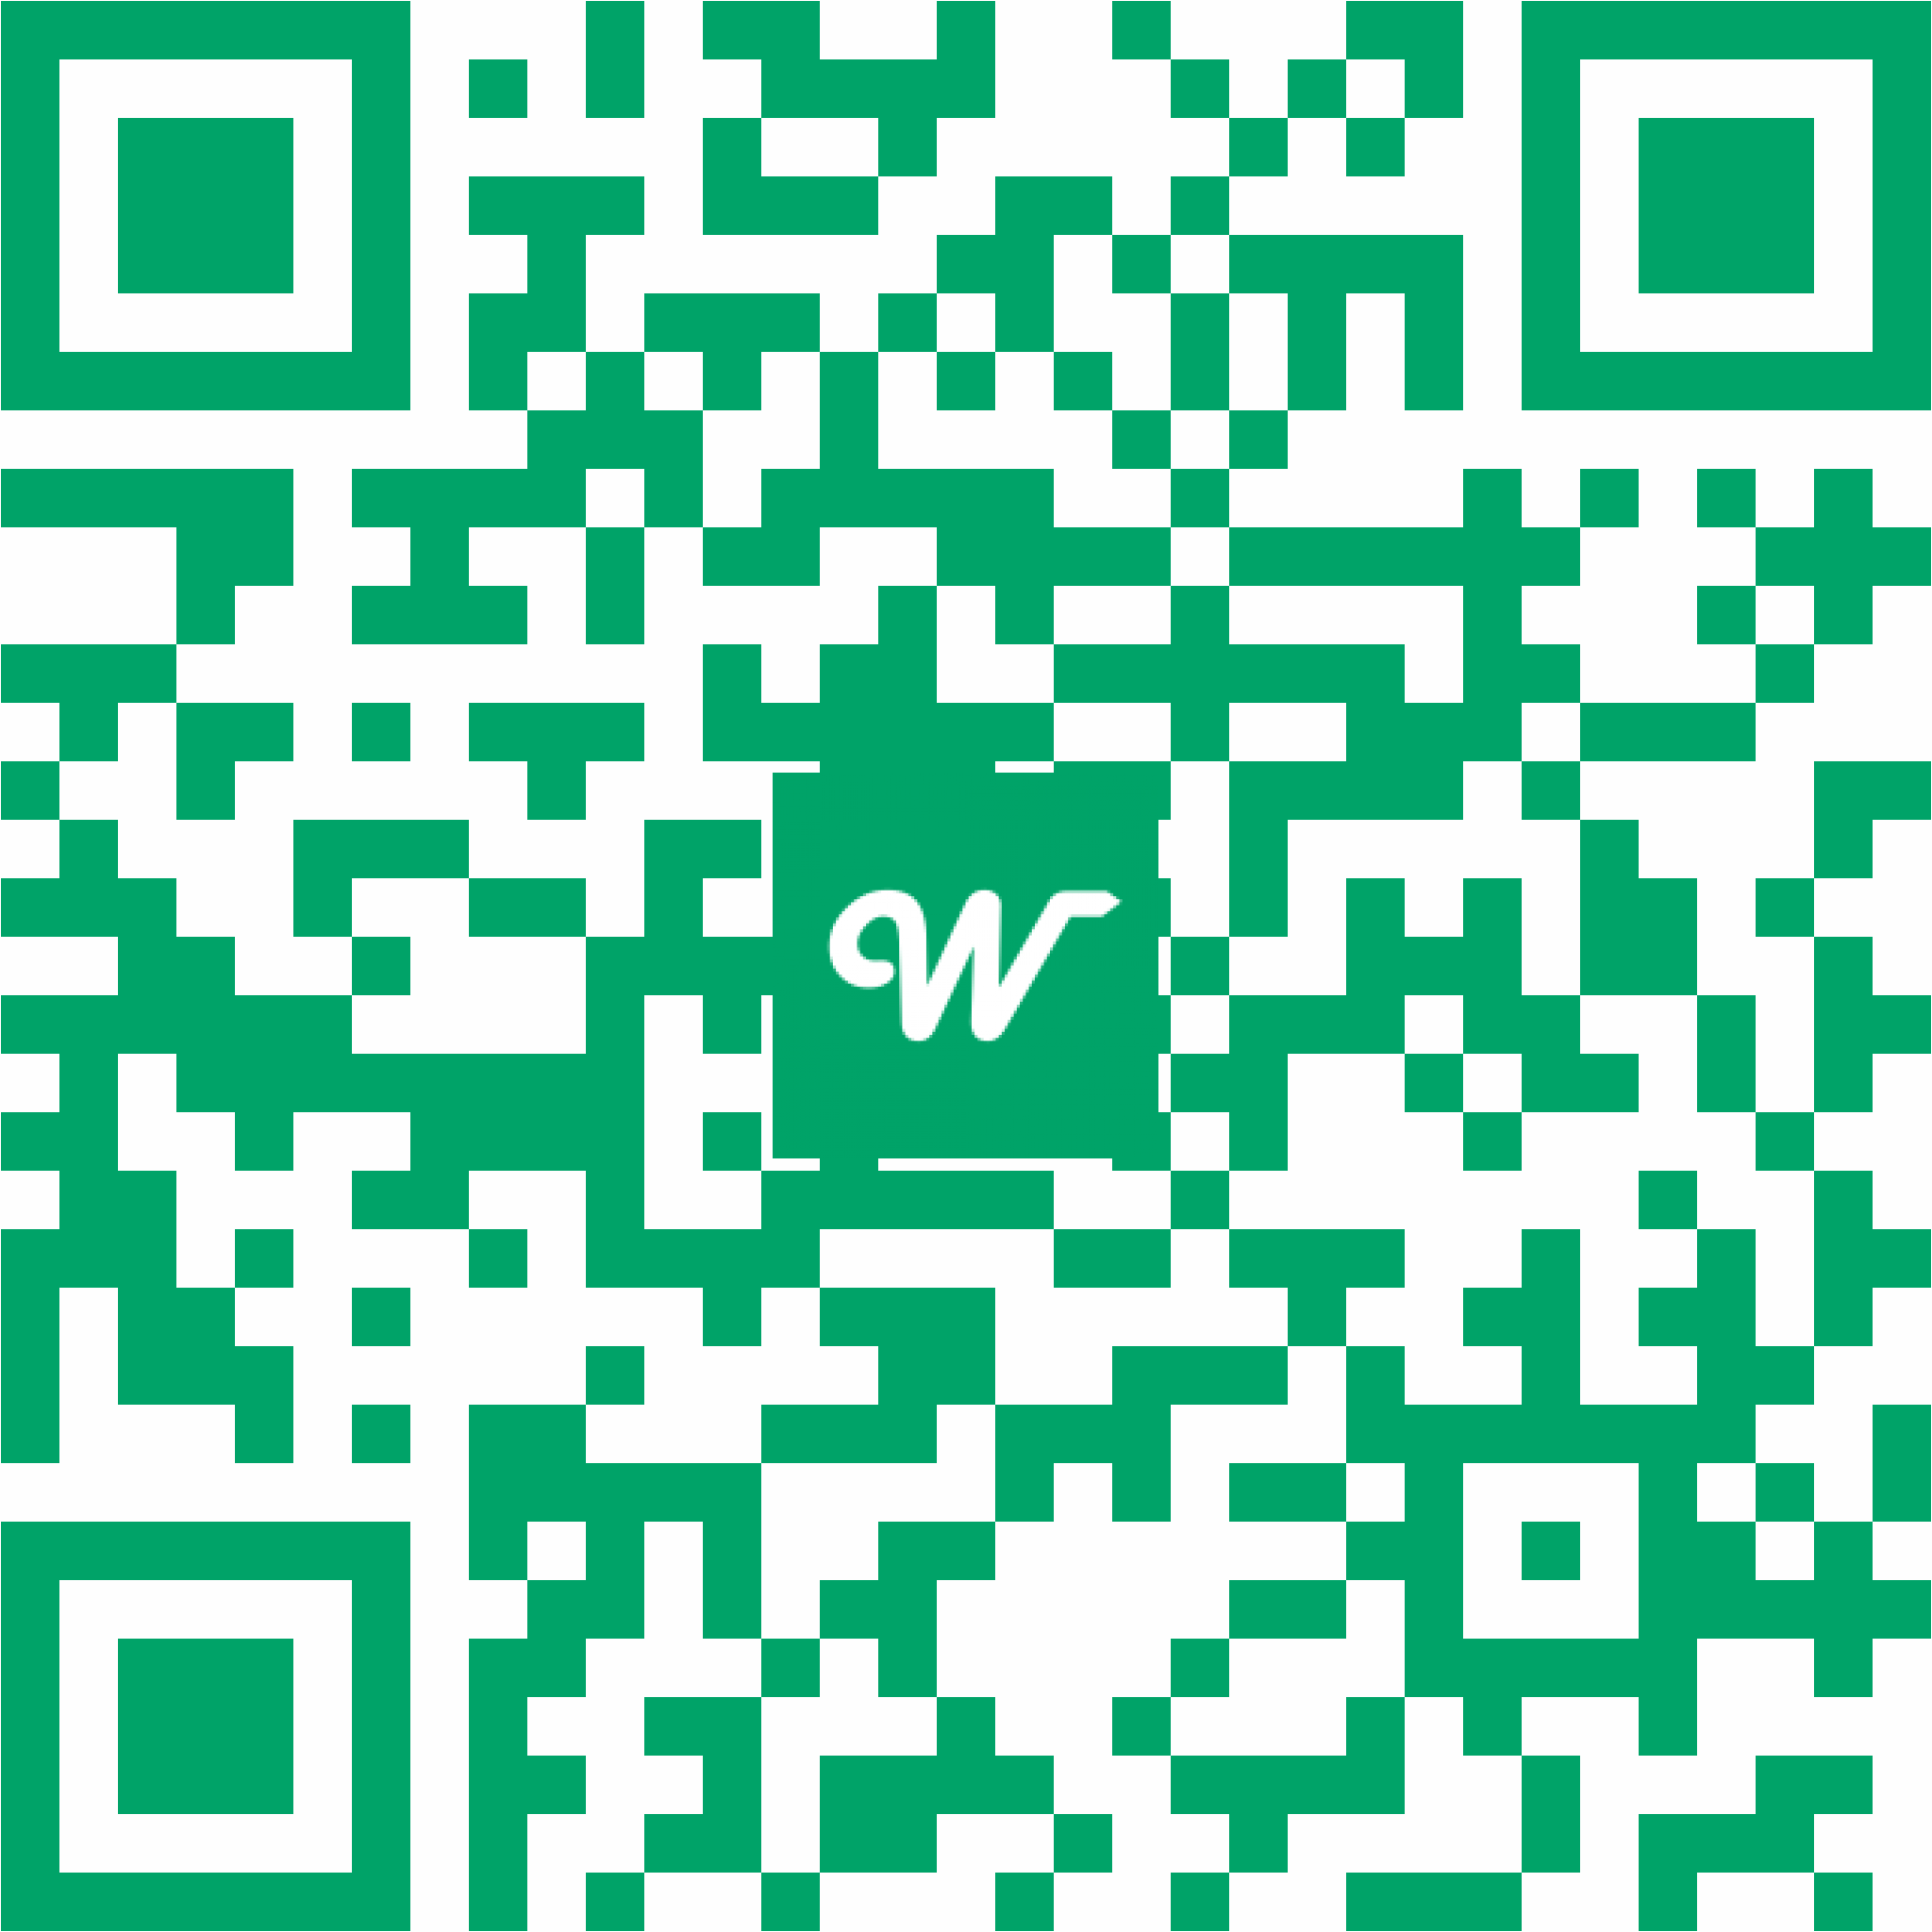 Printable QR code for Via Principala 41